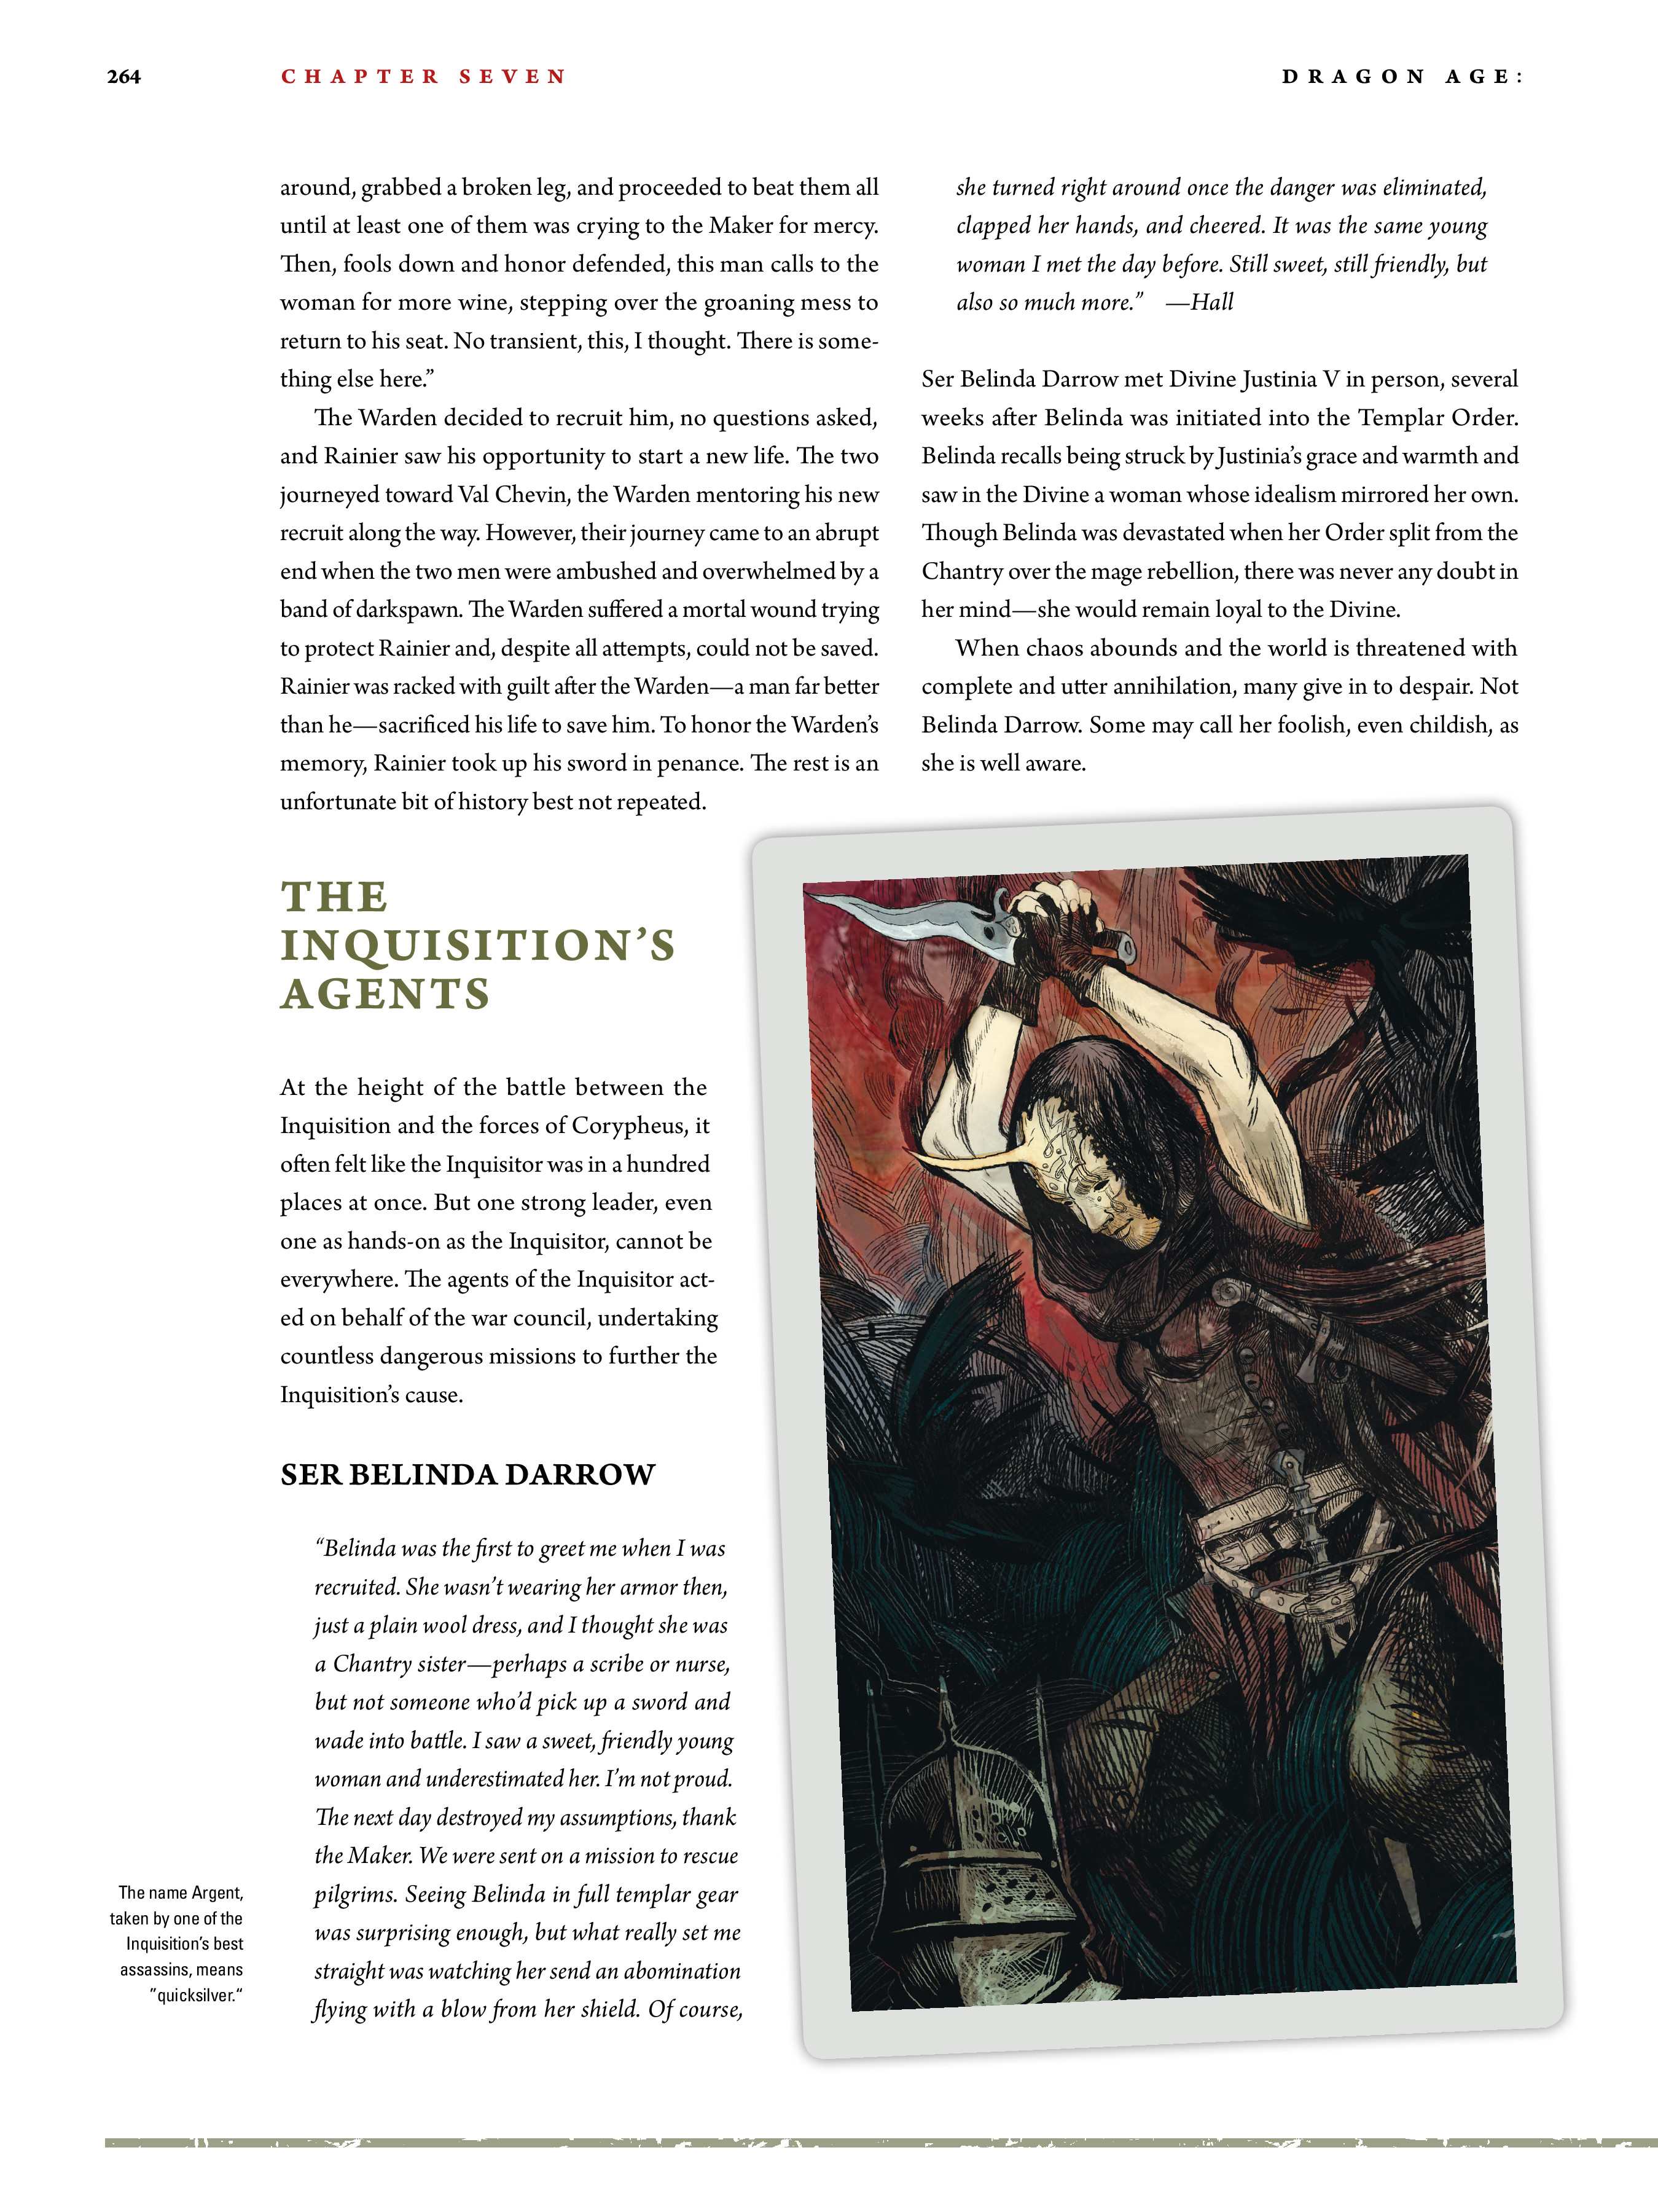 Read online Dragon Age: The World of Thedas comic -  Issue # TPB 2 - 257